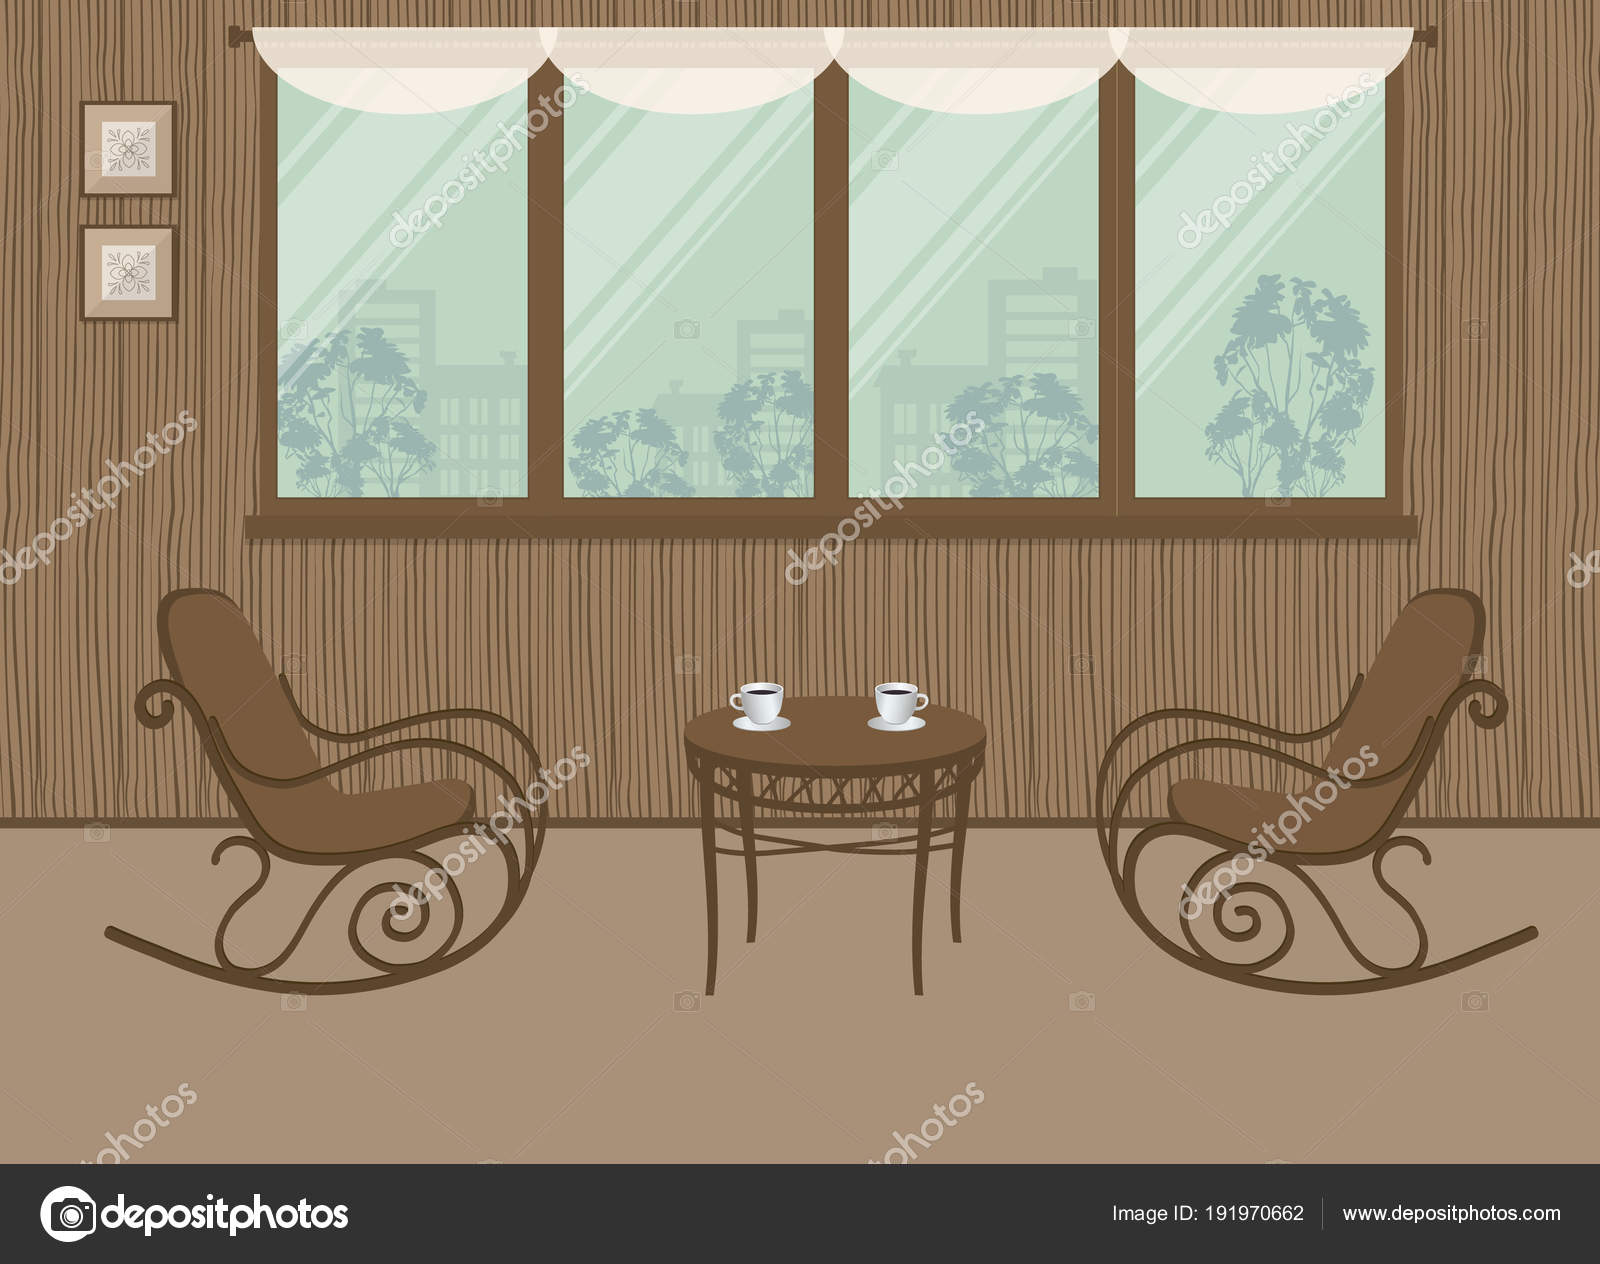 Two Rocking Chairs Coffee Table Window Background Interior Balcony Loggia u2014 Stock Vector & Two Rocking Chairs Coffee Table Window Background Interior Balcony ...